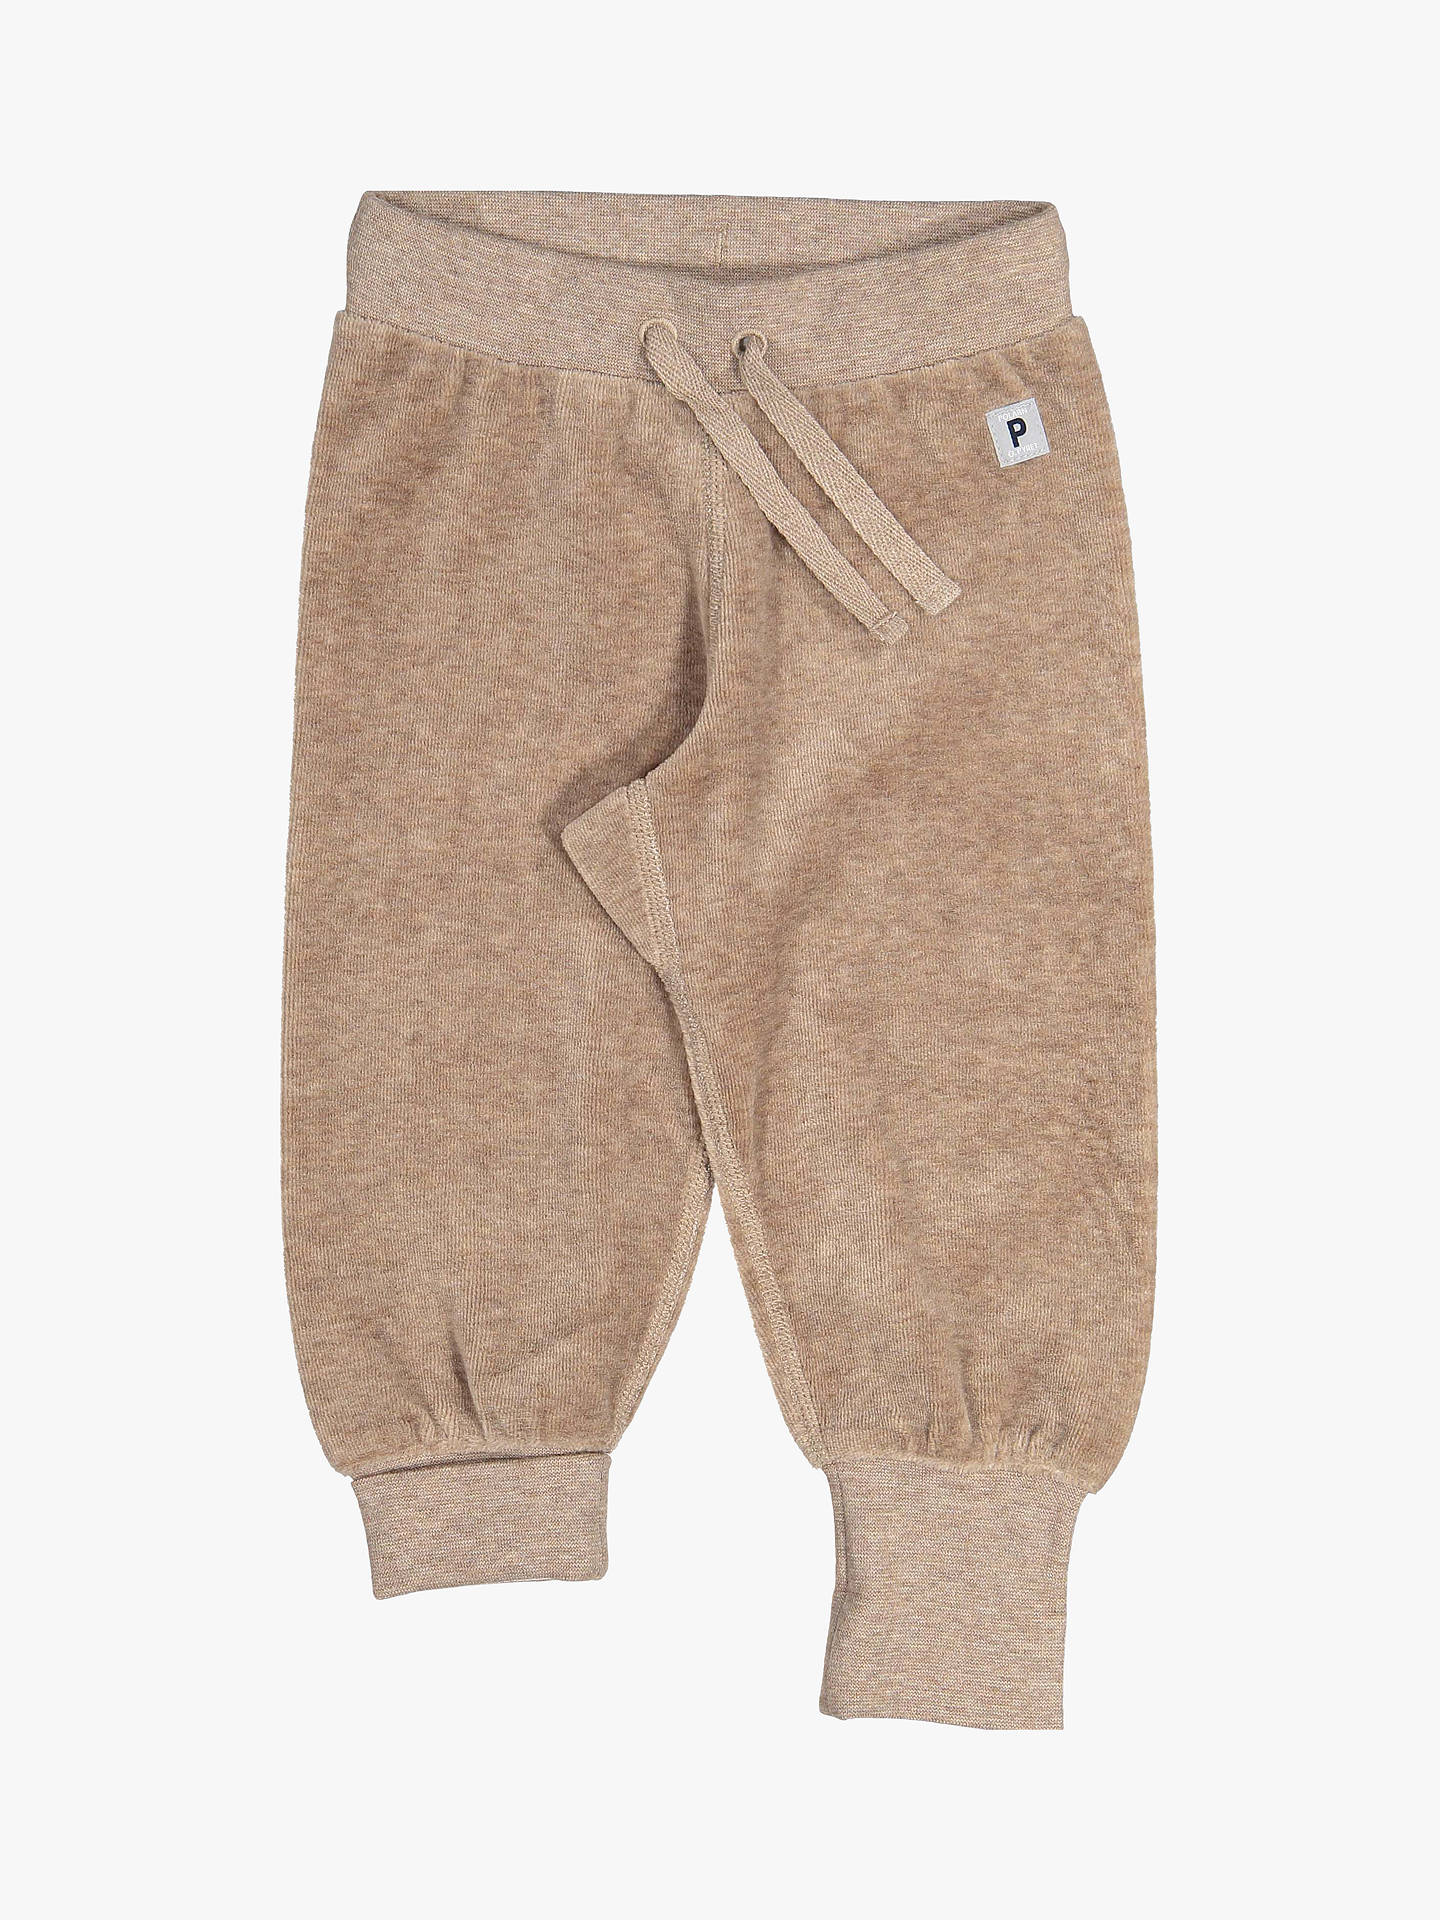 BuyPolarn O. Pyret Baby Velour Trousers, Brown, 0-1 months Online at johnlewis.com